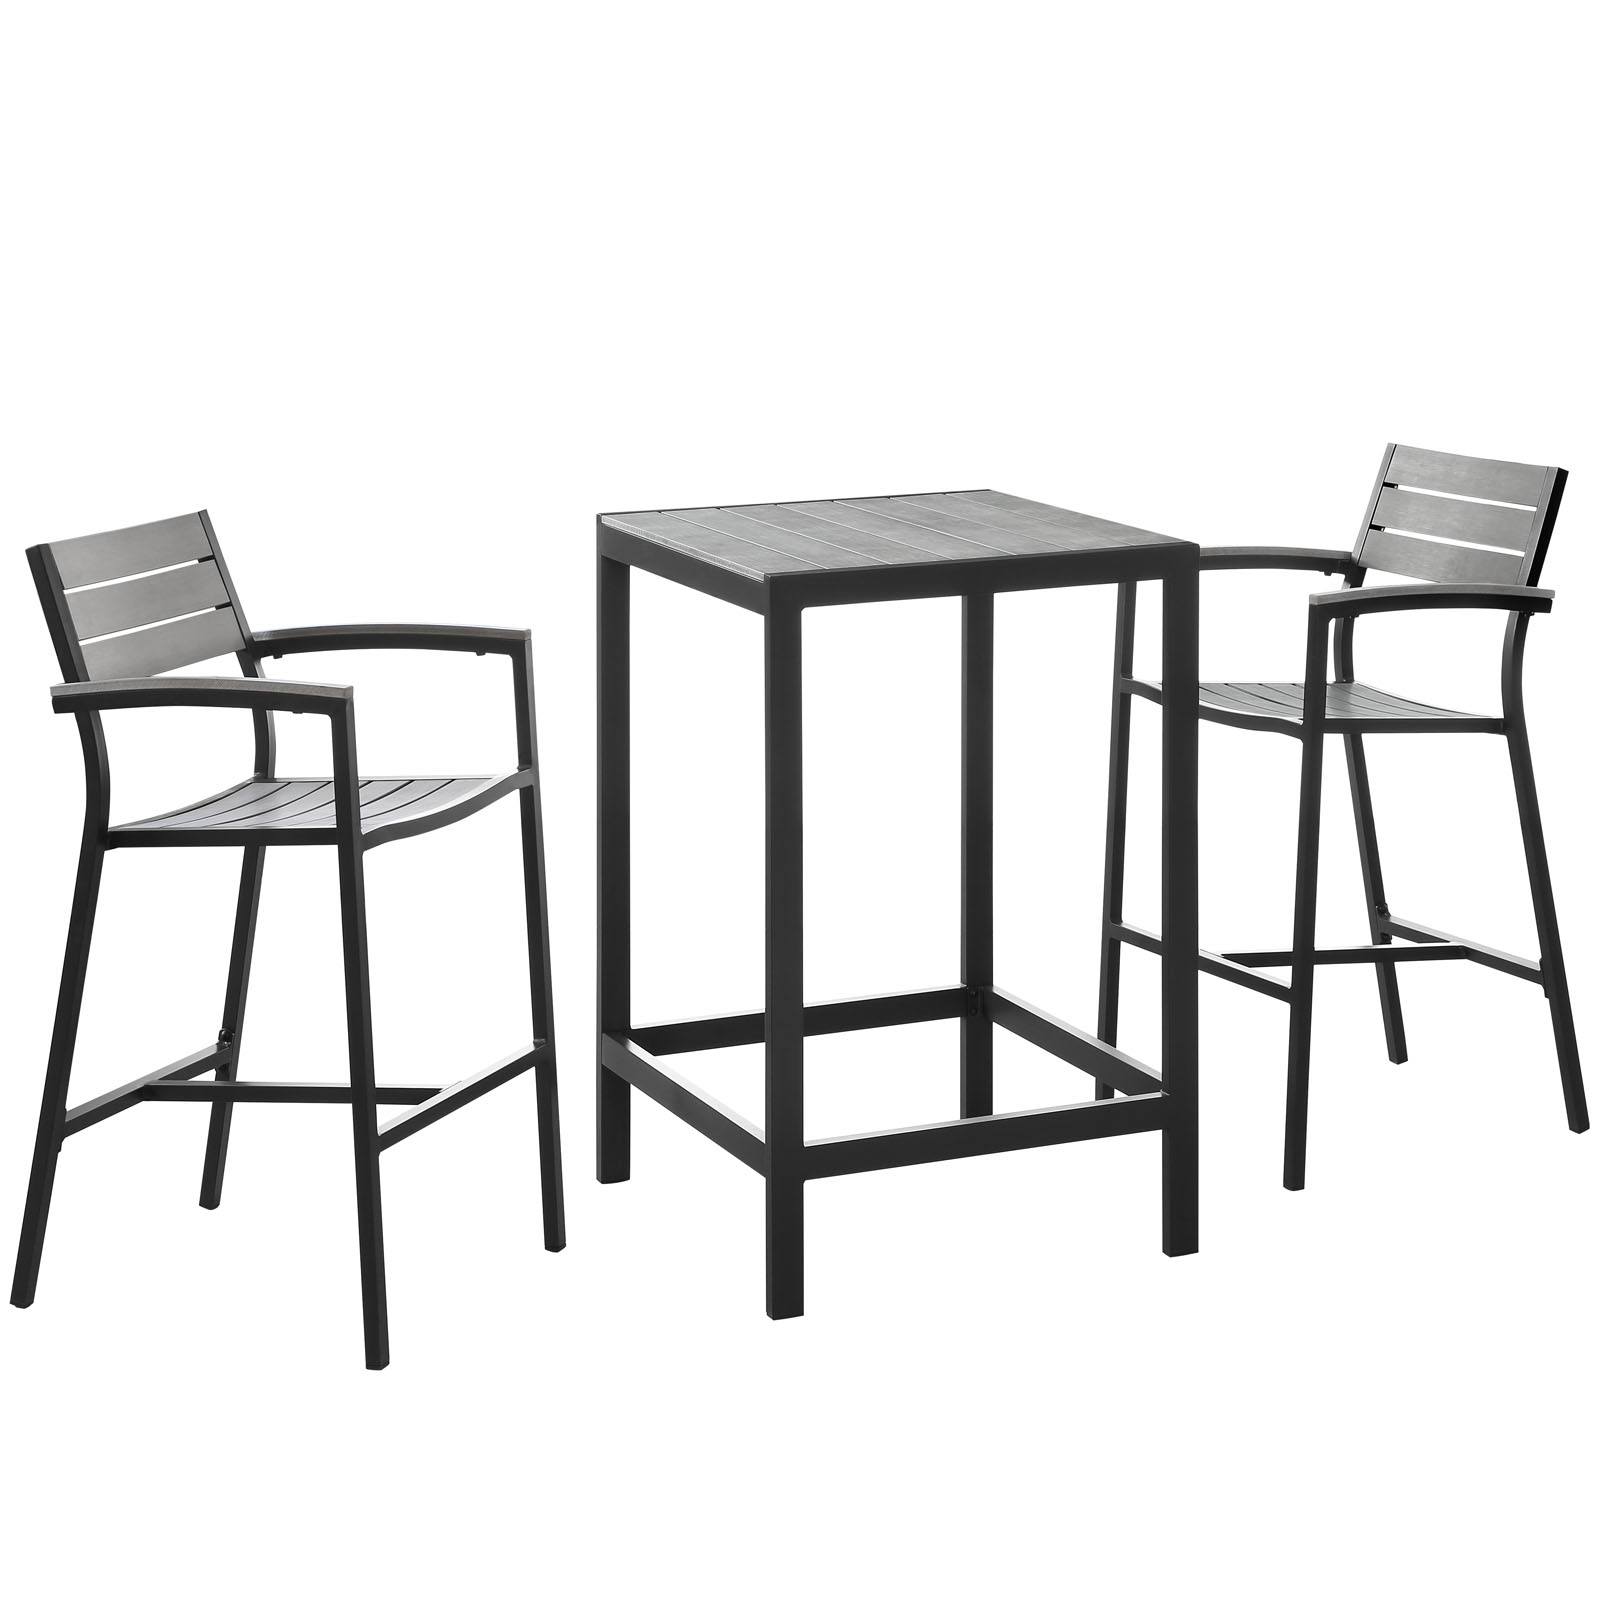 Modern Urban Contemporary 3 pcs Outdoor Patio Dining Room Set, Brown Grey Steel by